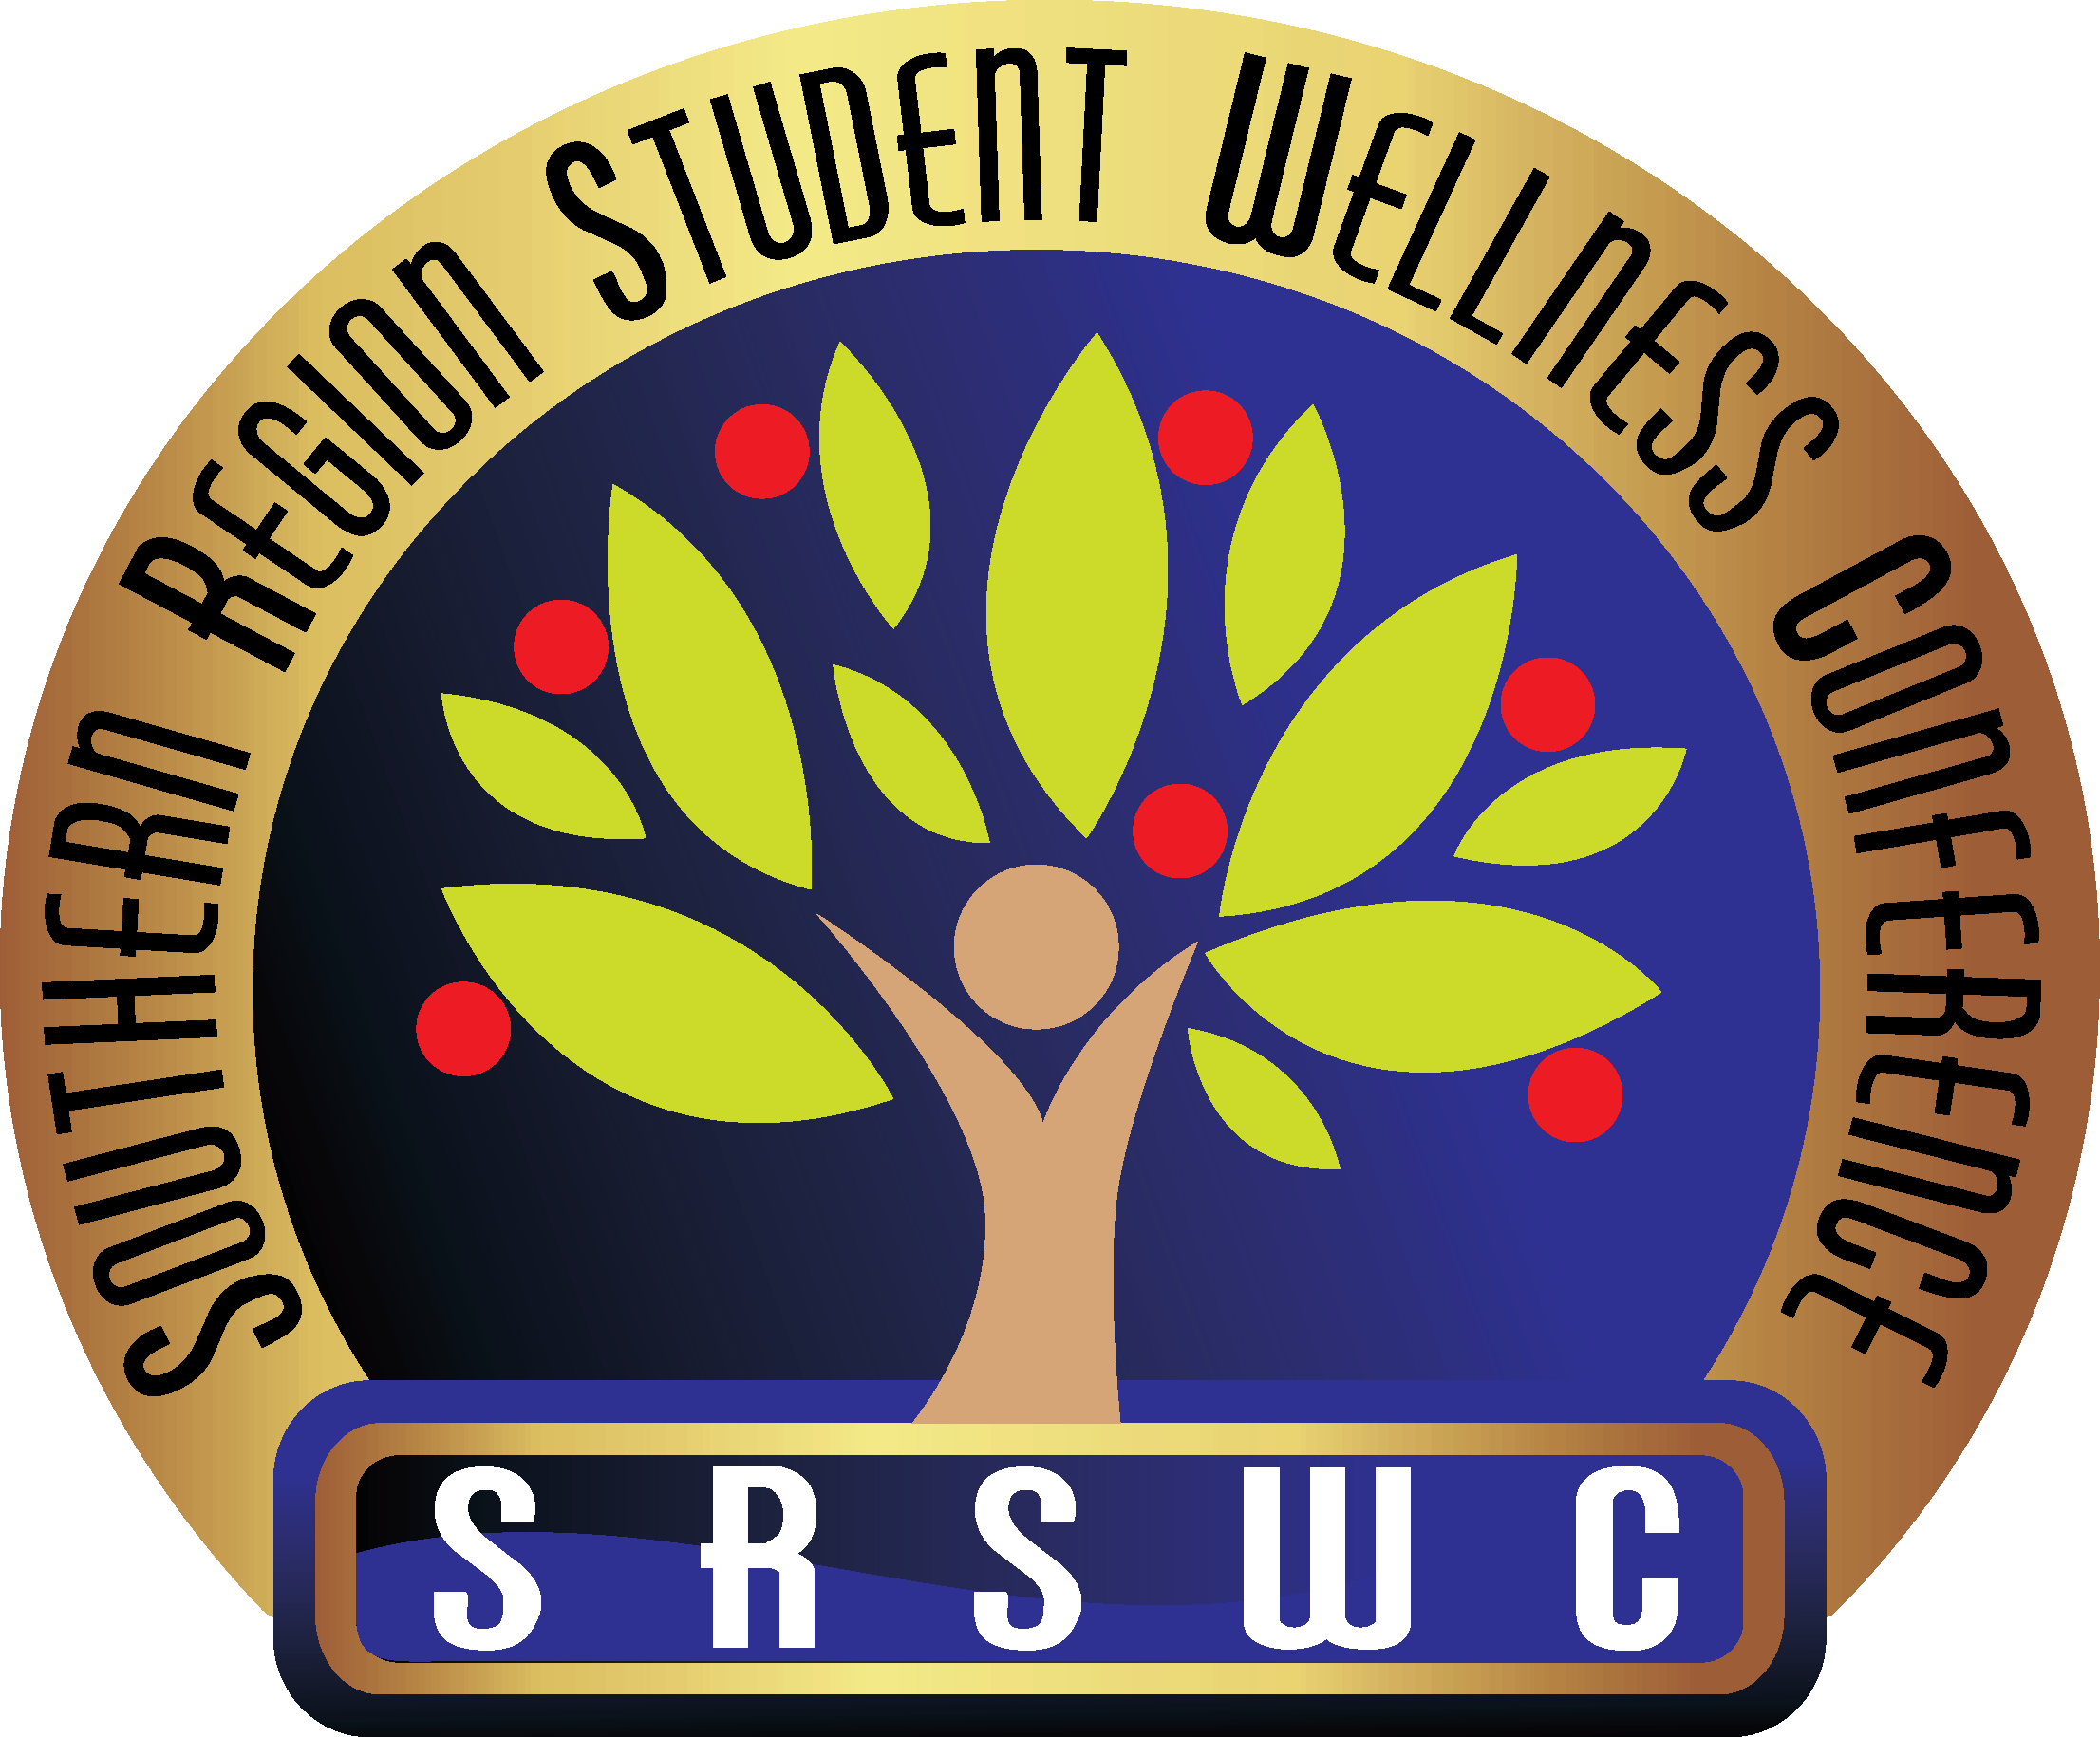 Southern Region Student Wellness Conference